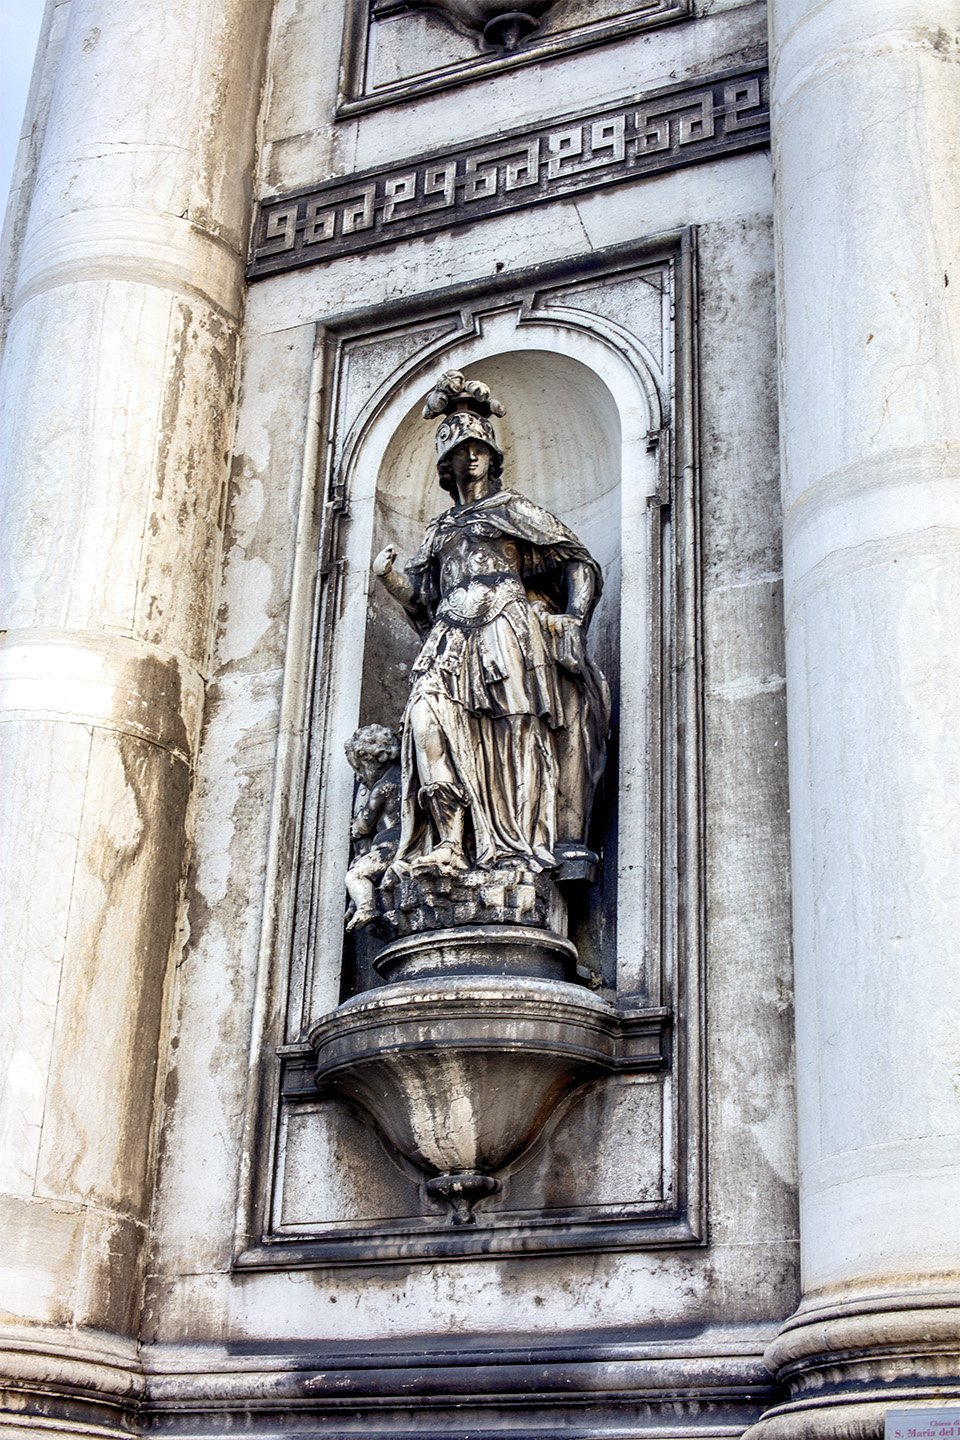 Church of Santa Maria del Rosario, Venice, Italy, July 14, 2018